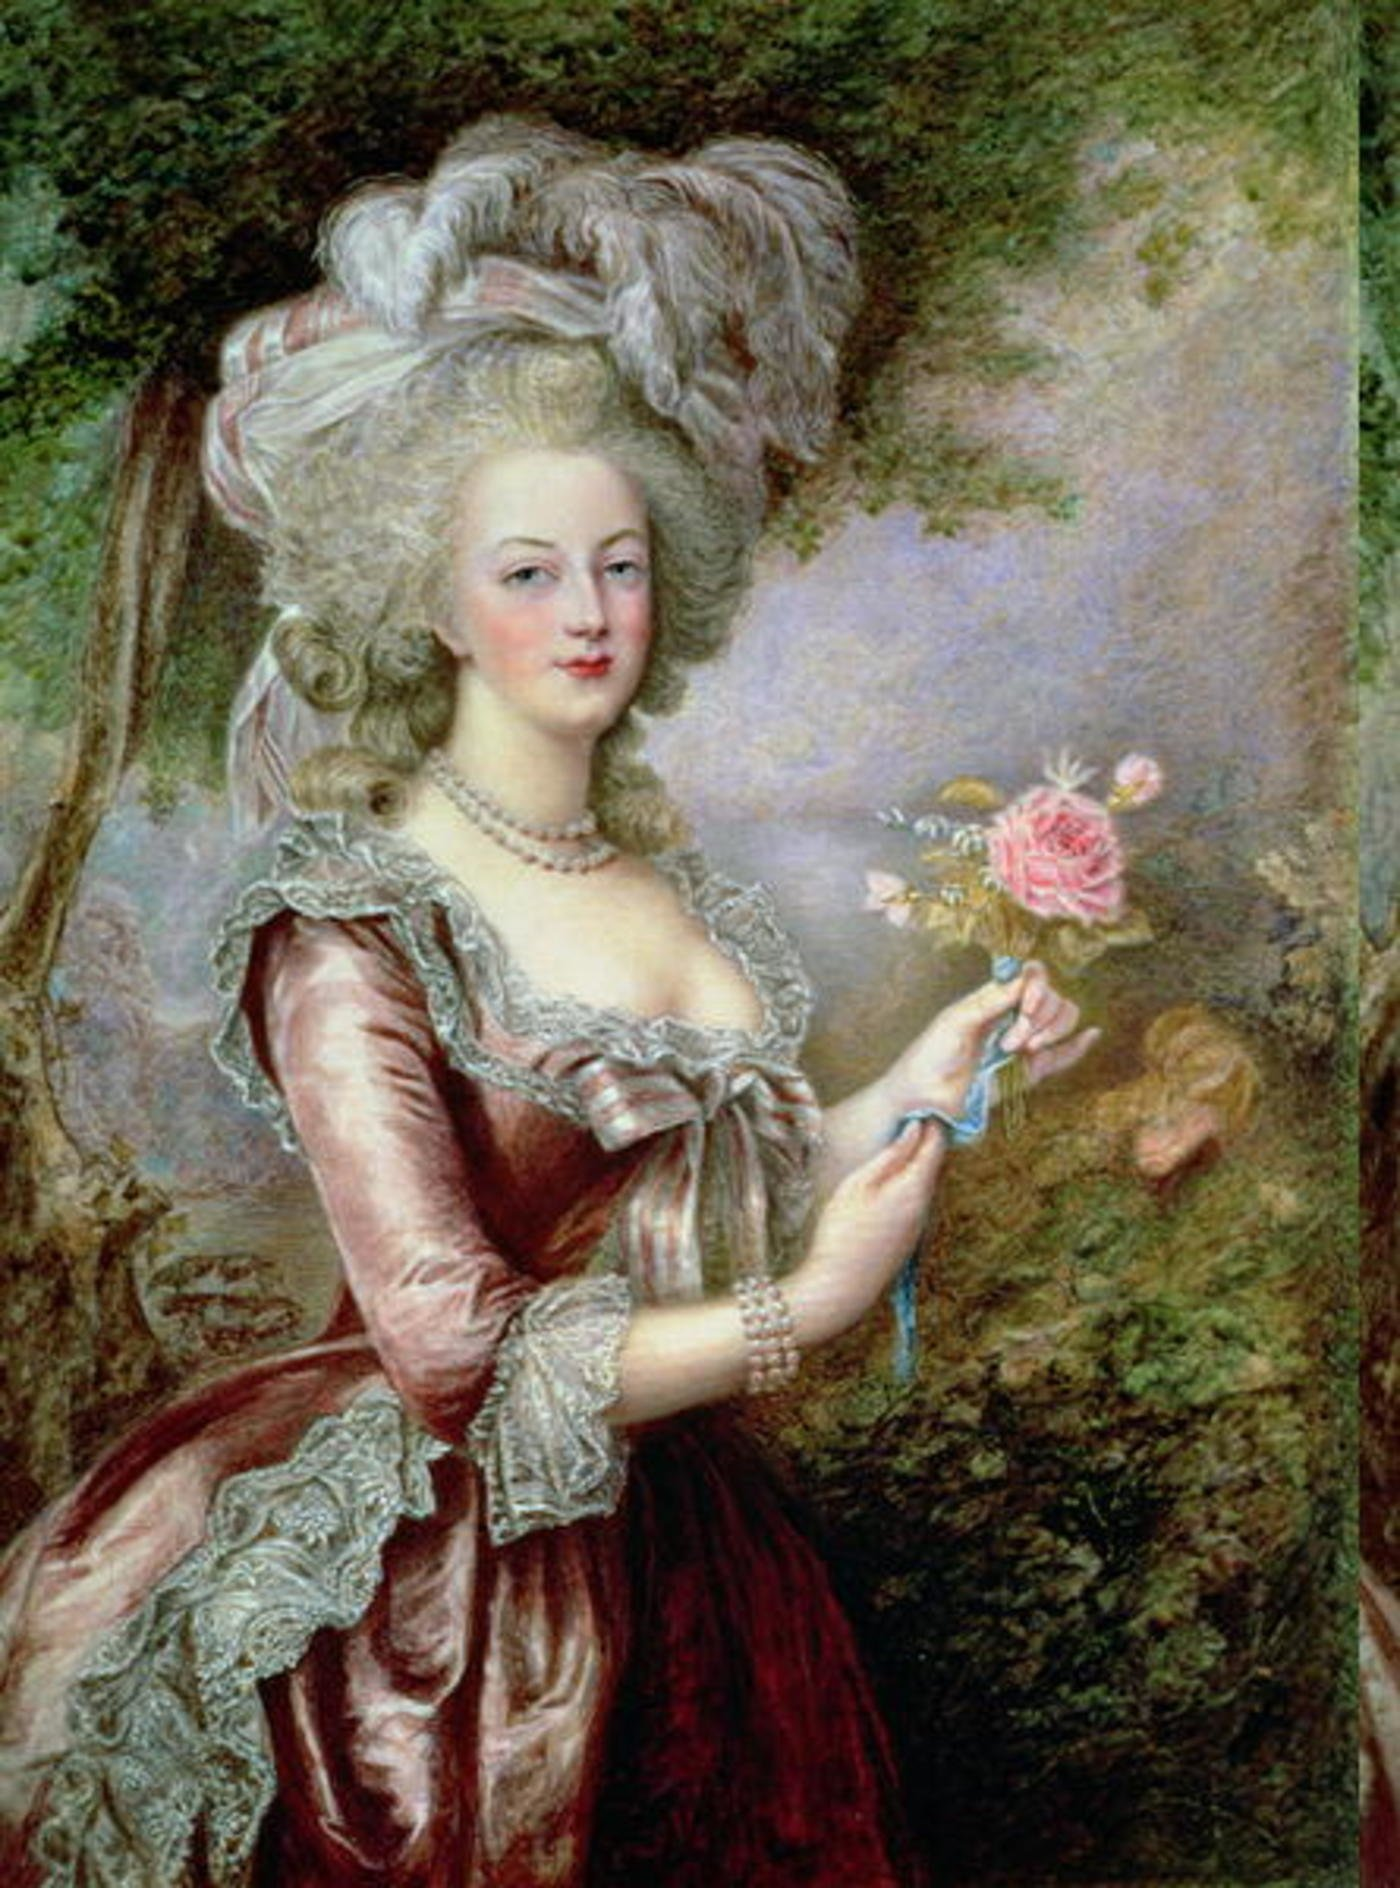 Rococo Painting Reproductions For Sale   1st Art Gallery Rococo oil painting reproductions